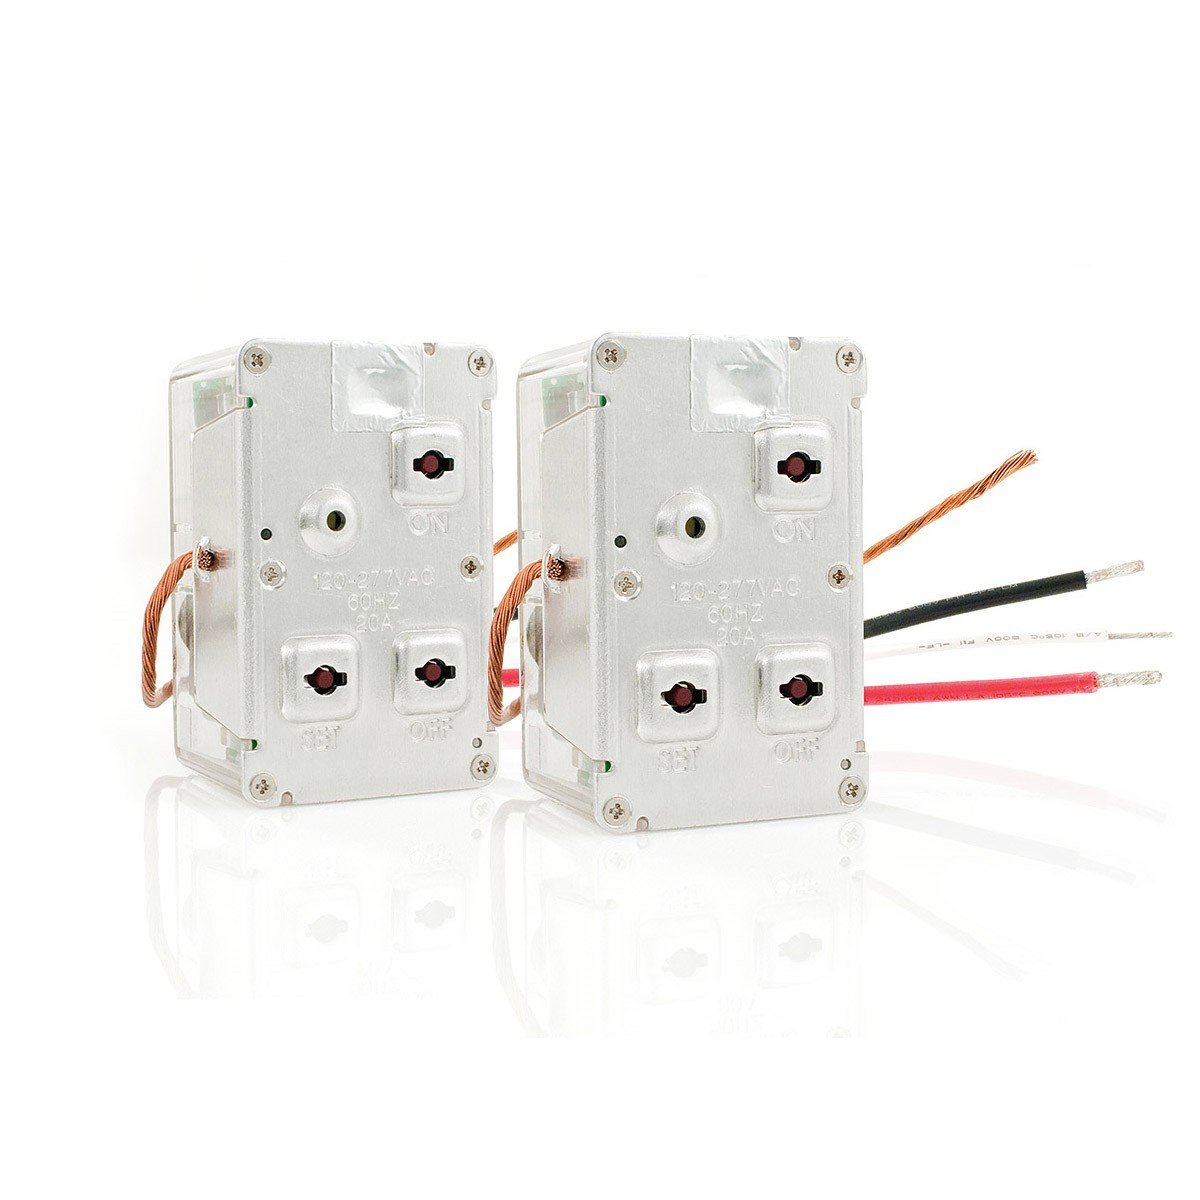 Insteon In-LineLinc Relay - Insteon Remote Control In-Line On/Off Switch, Dual-Band (2 Pack)